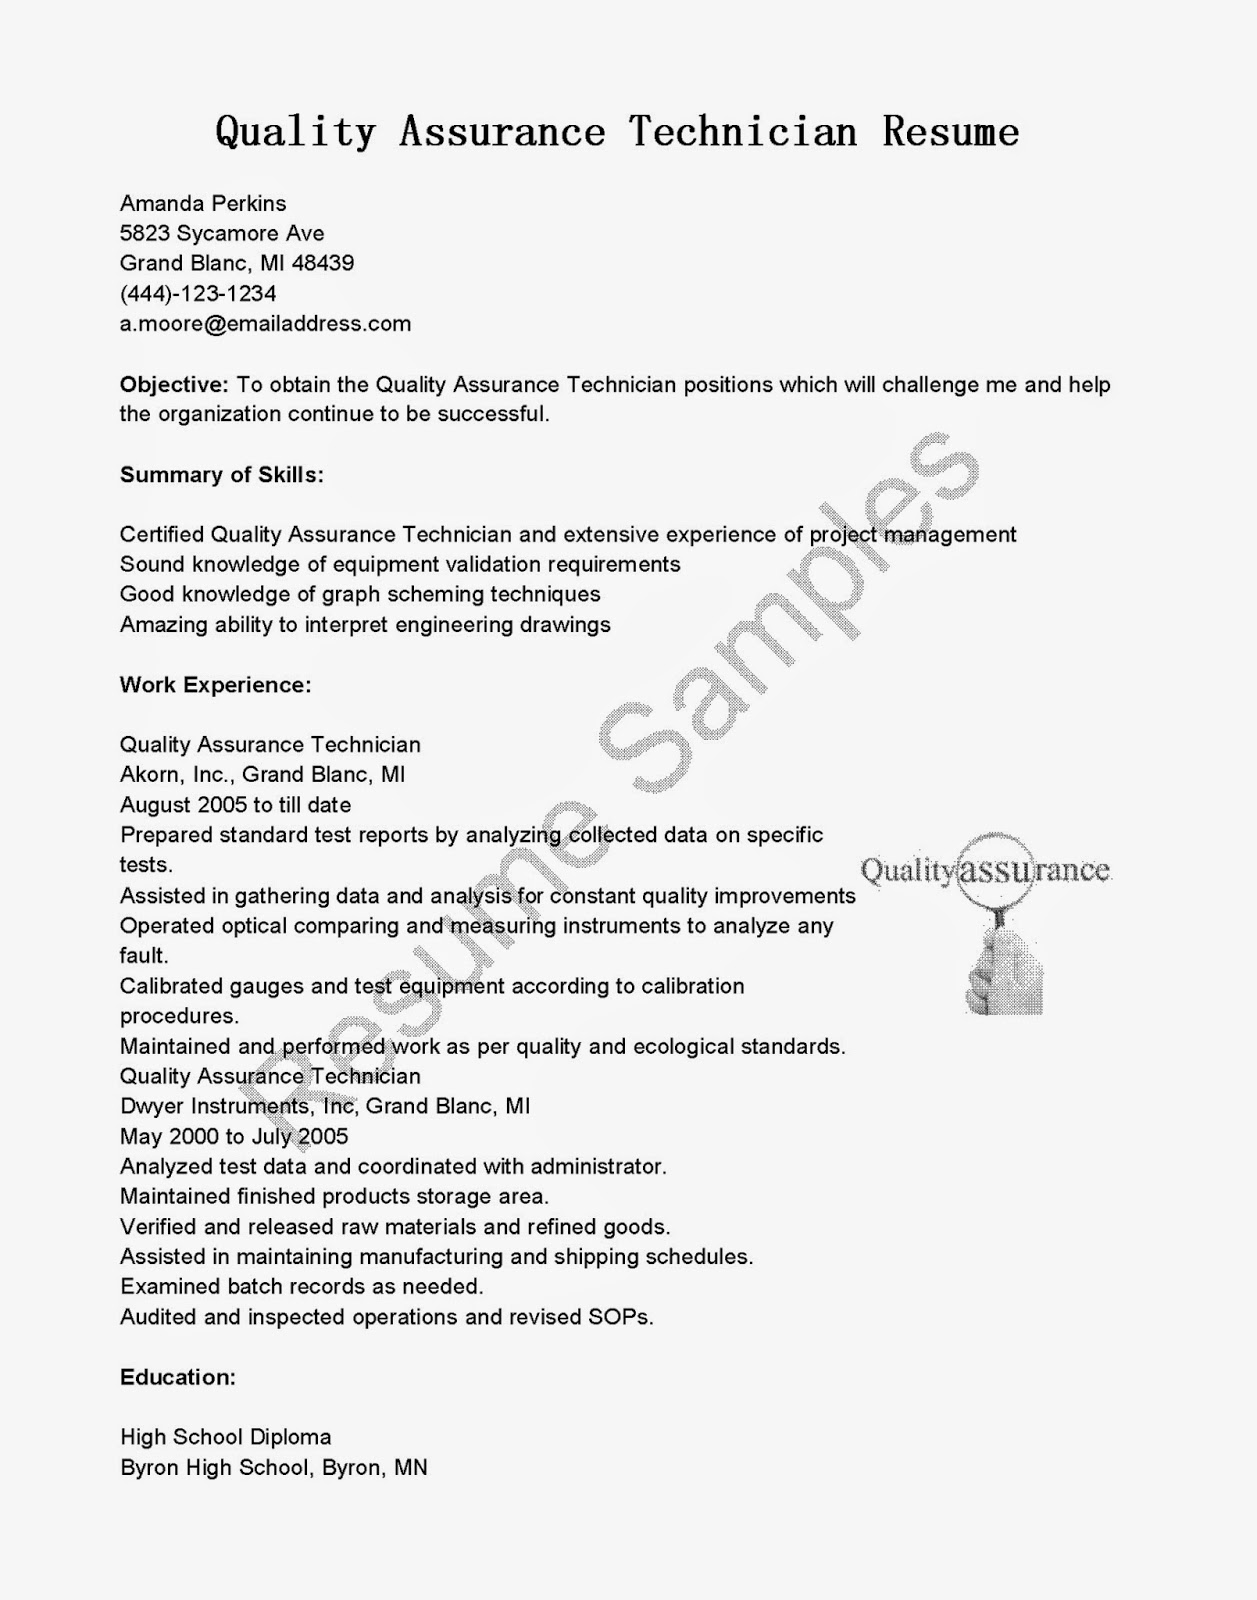 engineer resume samples and tips - Wastewater Technician Resume Sample